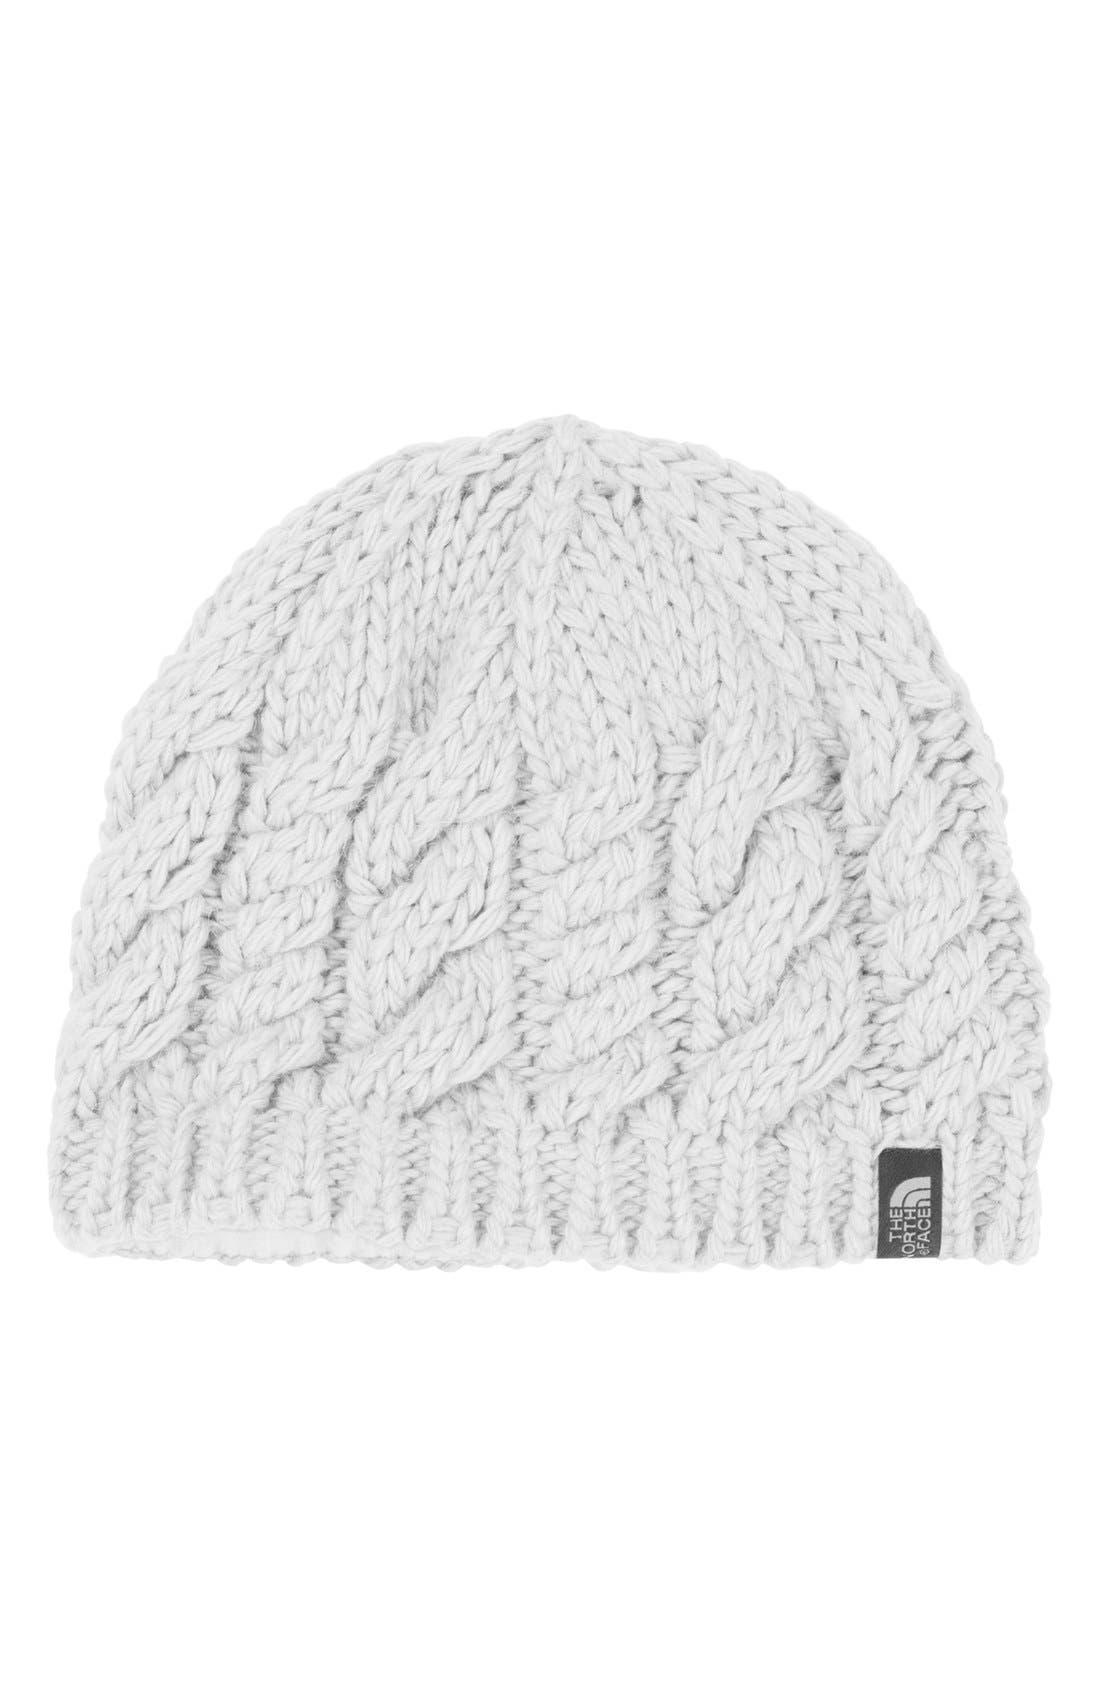 Alternate Image 1 Selected - The North Face 'Cable Fish' Beanie (Girls)